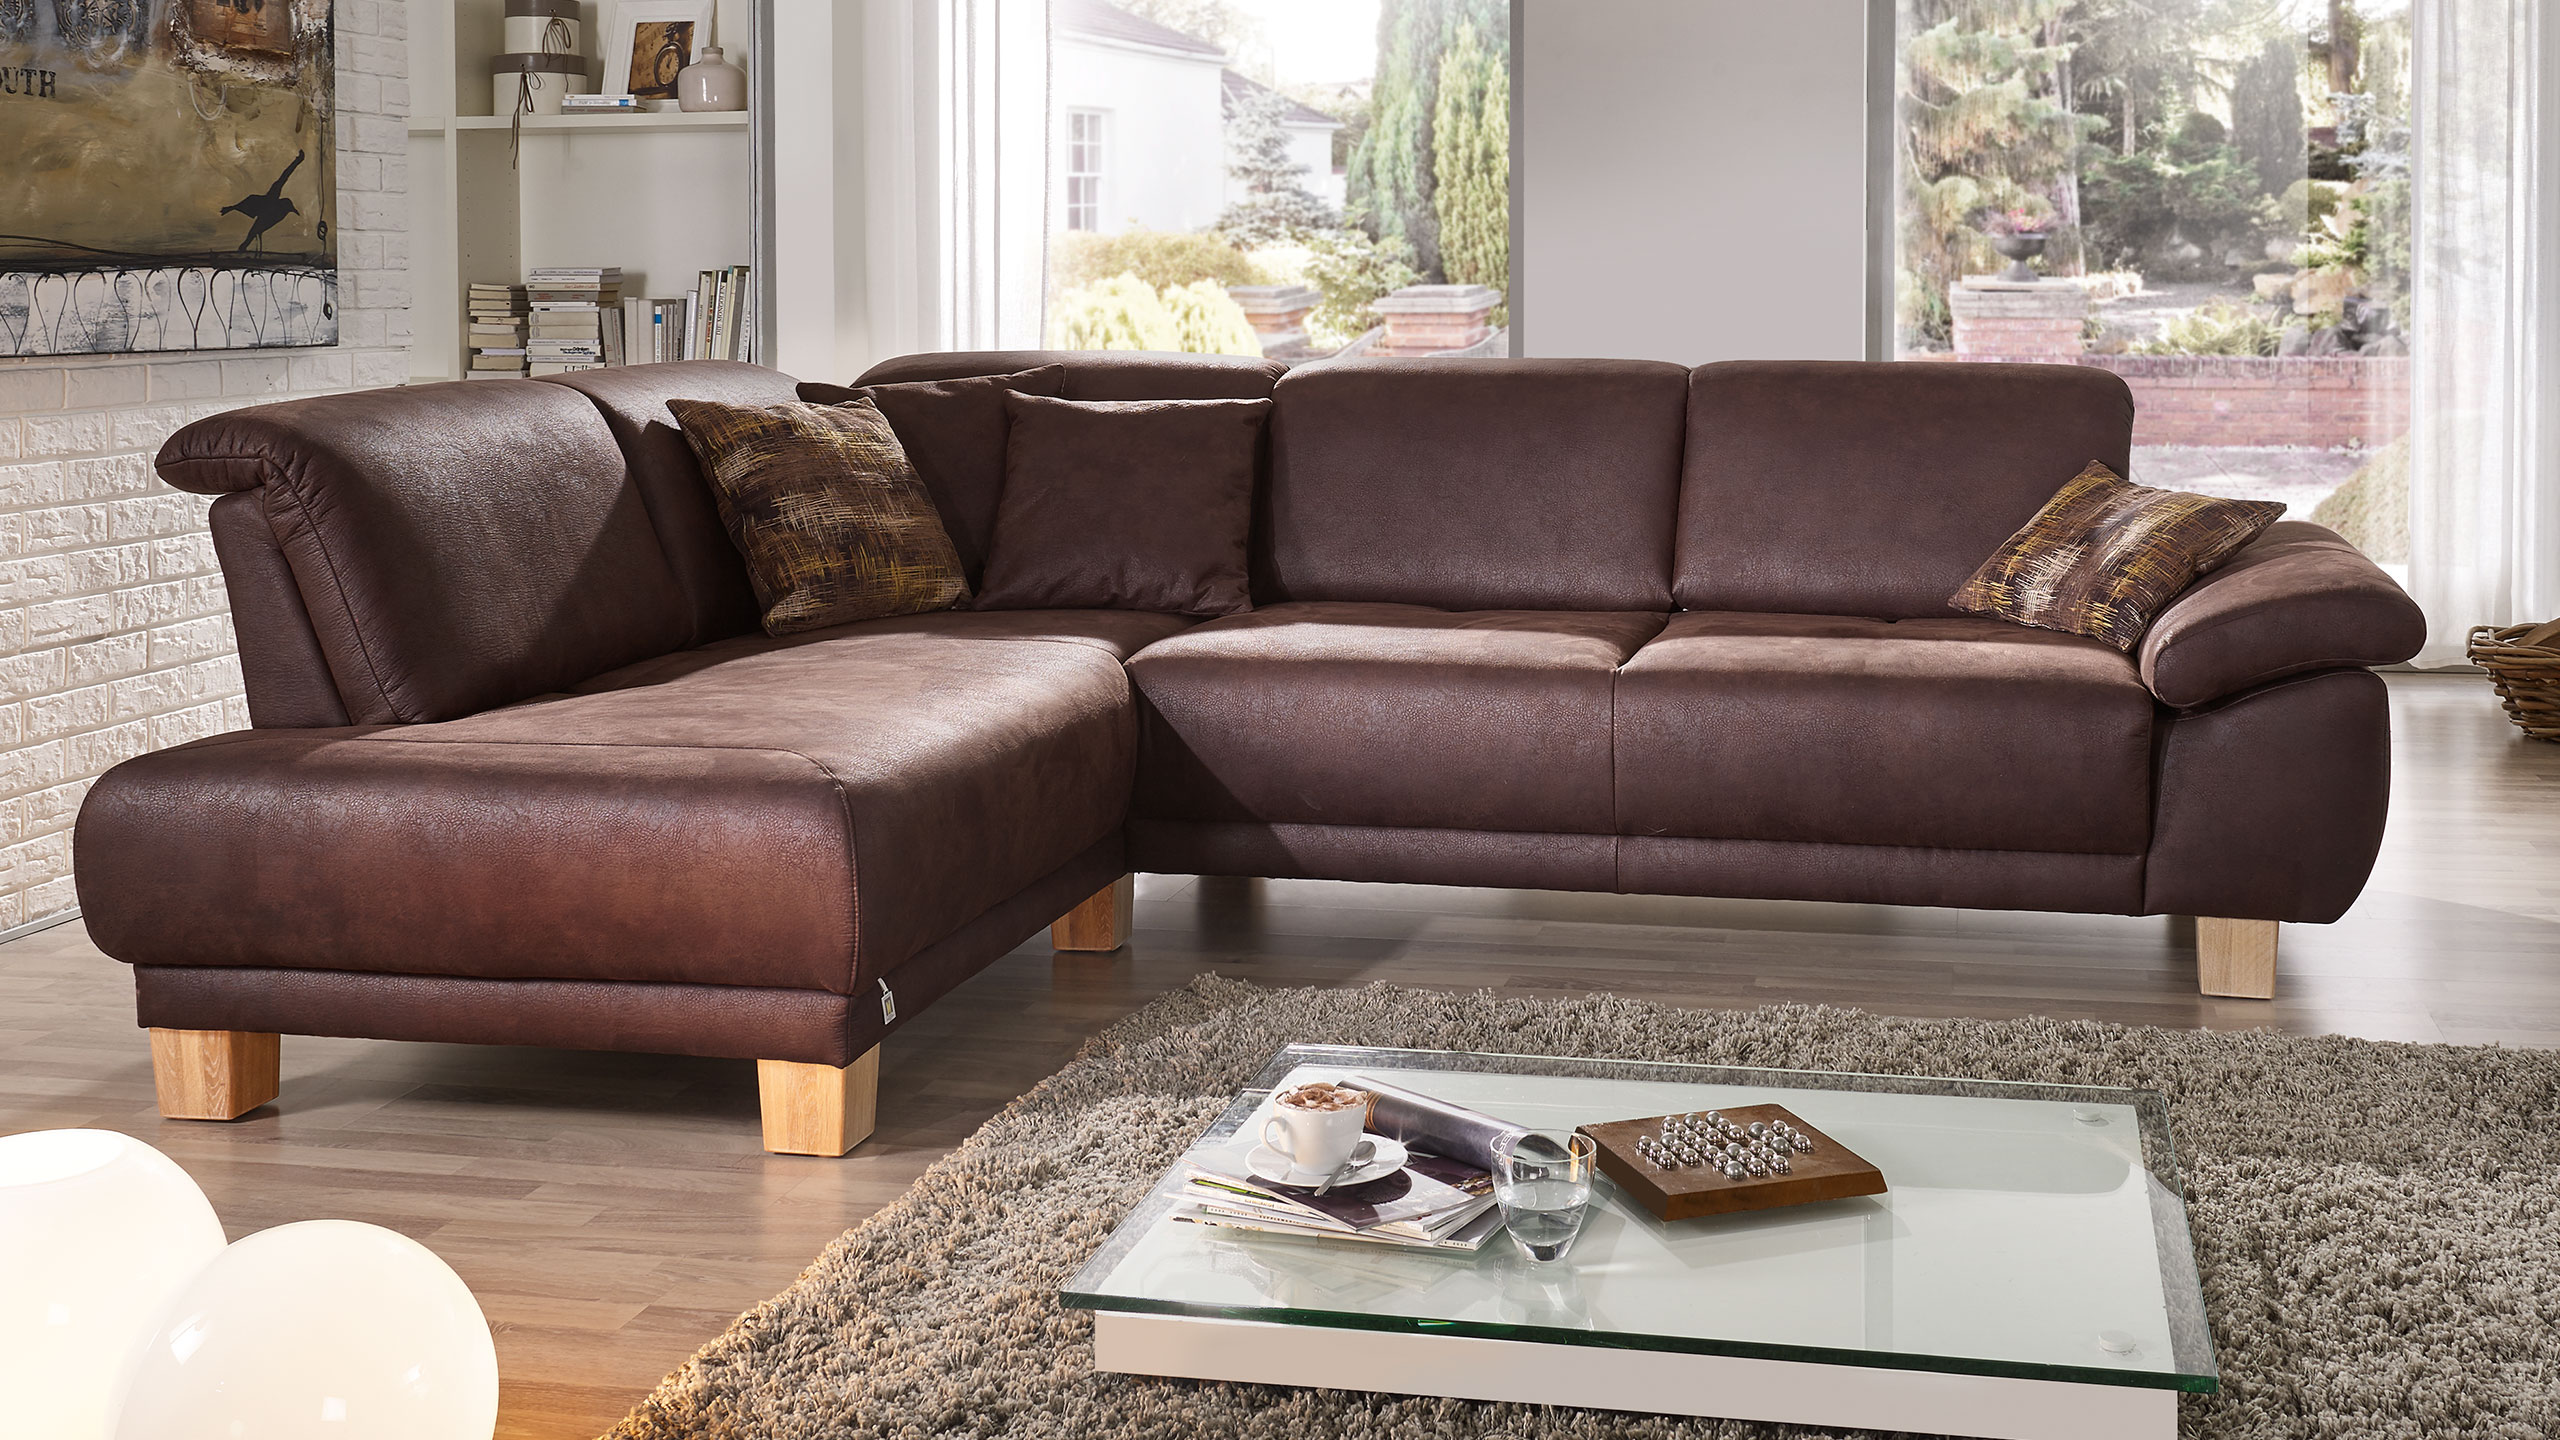 Full Size of Single Ecksofa Stoff Gelb Multipolster Sofa Breit Abnehmbarer Bezug Schlaf Groß Lila Englisch München Ohne Lehne Canape Angebote Mit Relaxfunktion Kleines Sofa Sofa Ohne Lehne